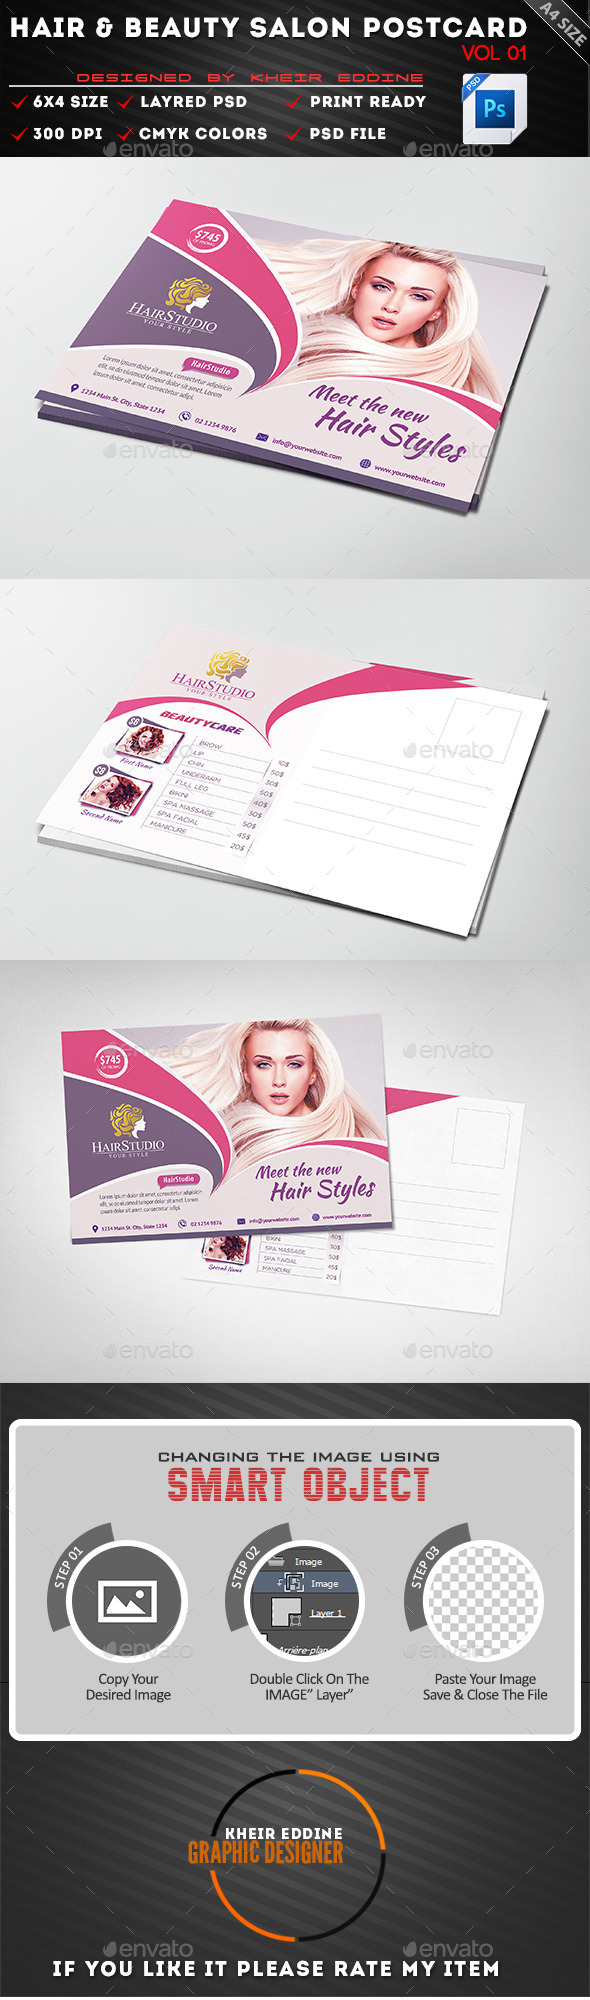 GraphicRiver Hair & Beauty Salon PostCard Vol 01 11955740